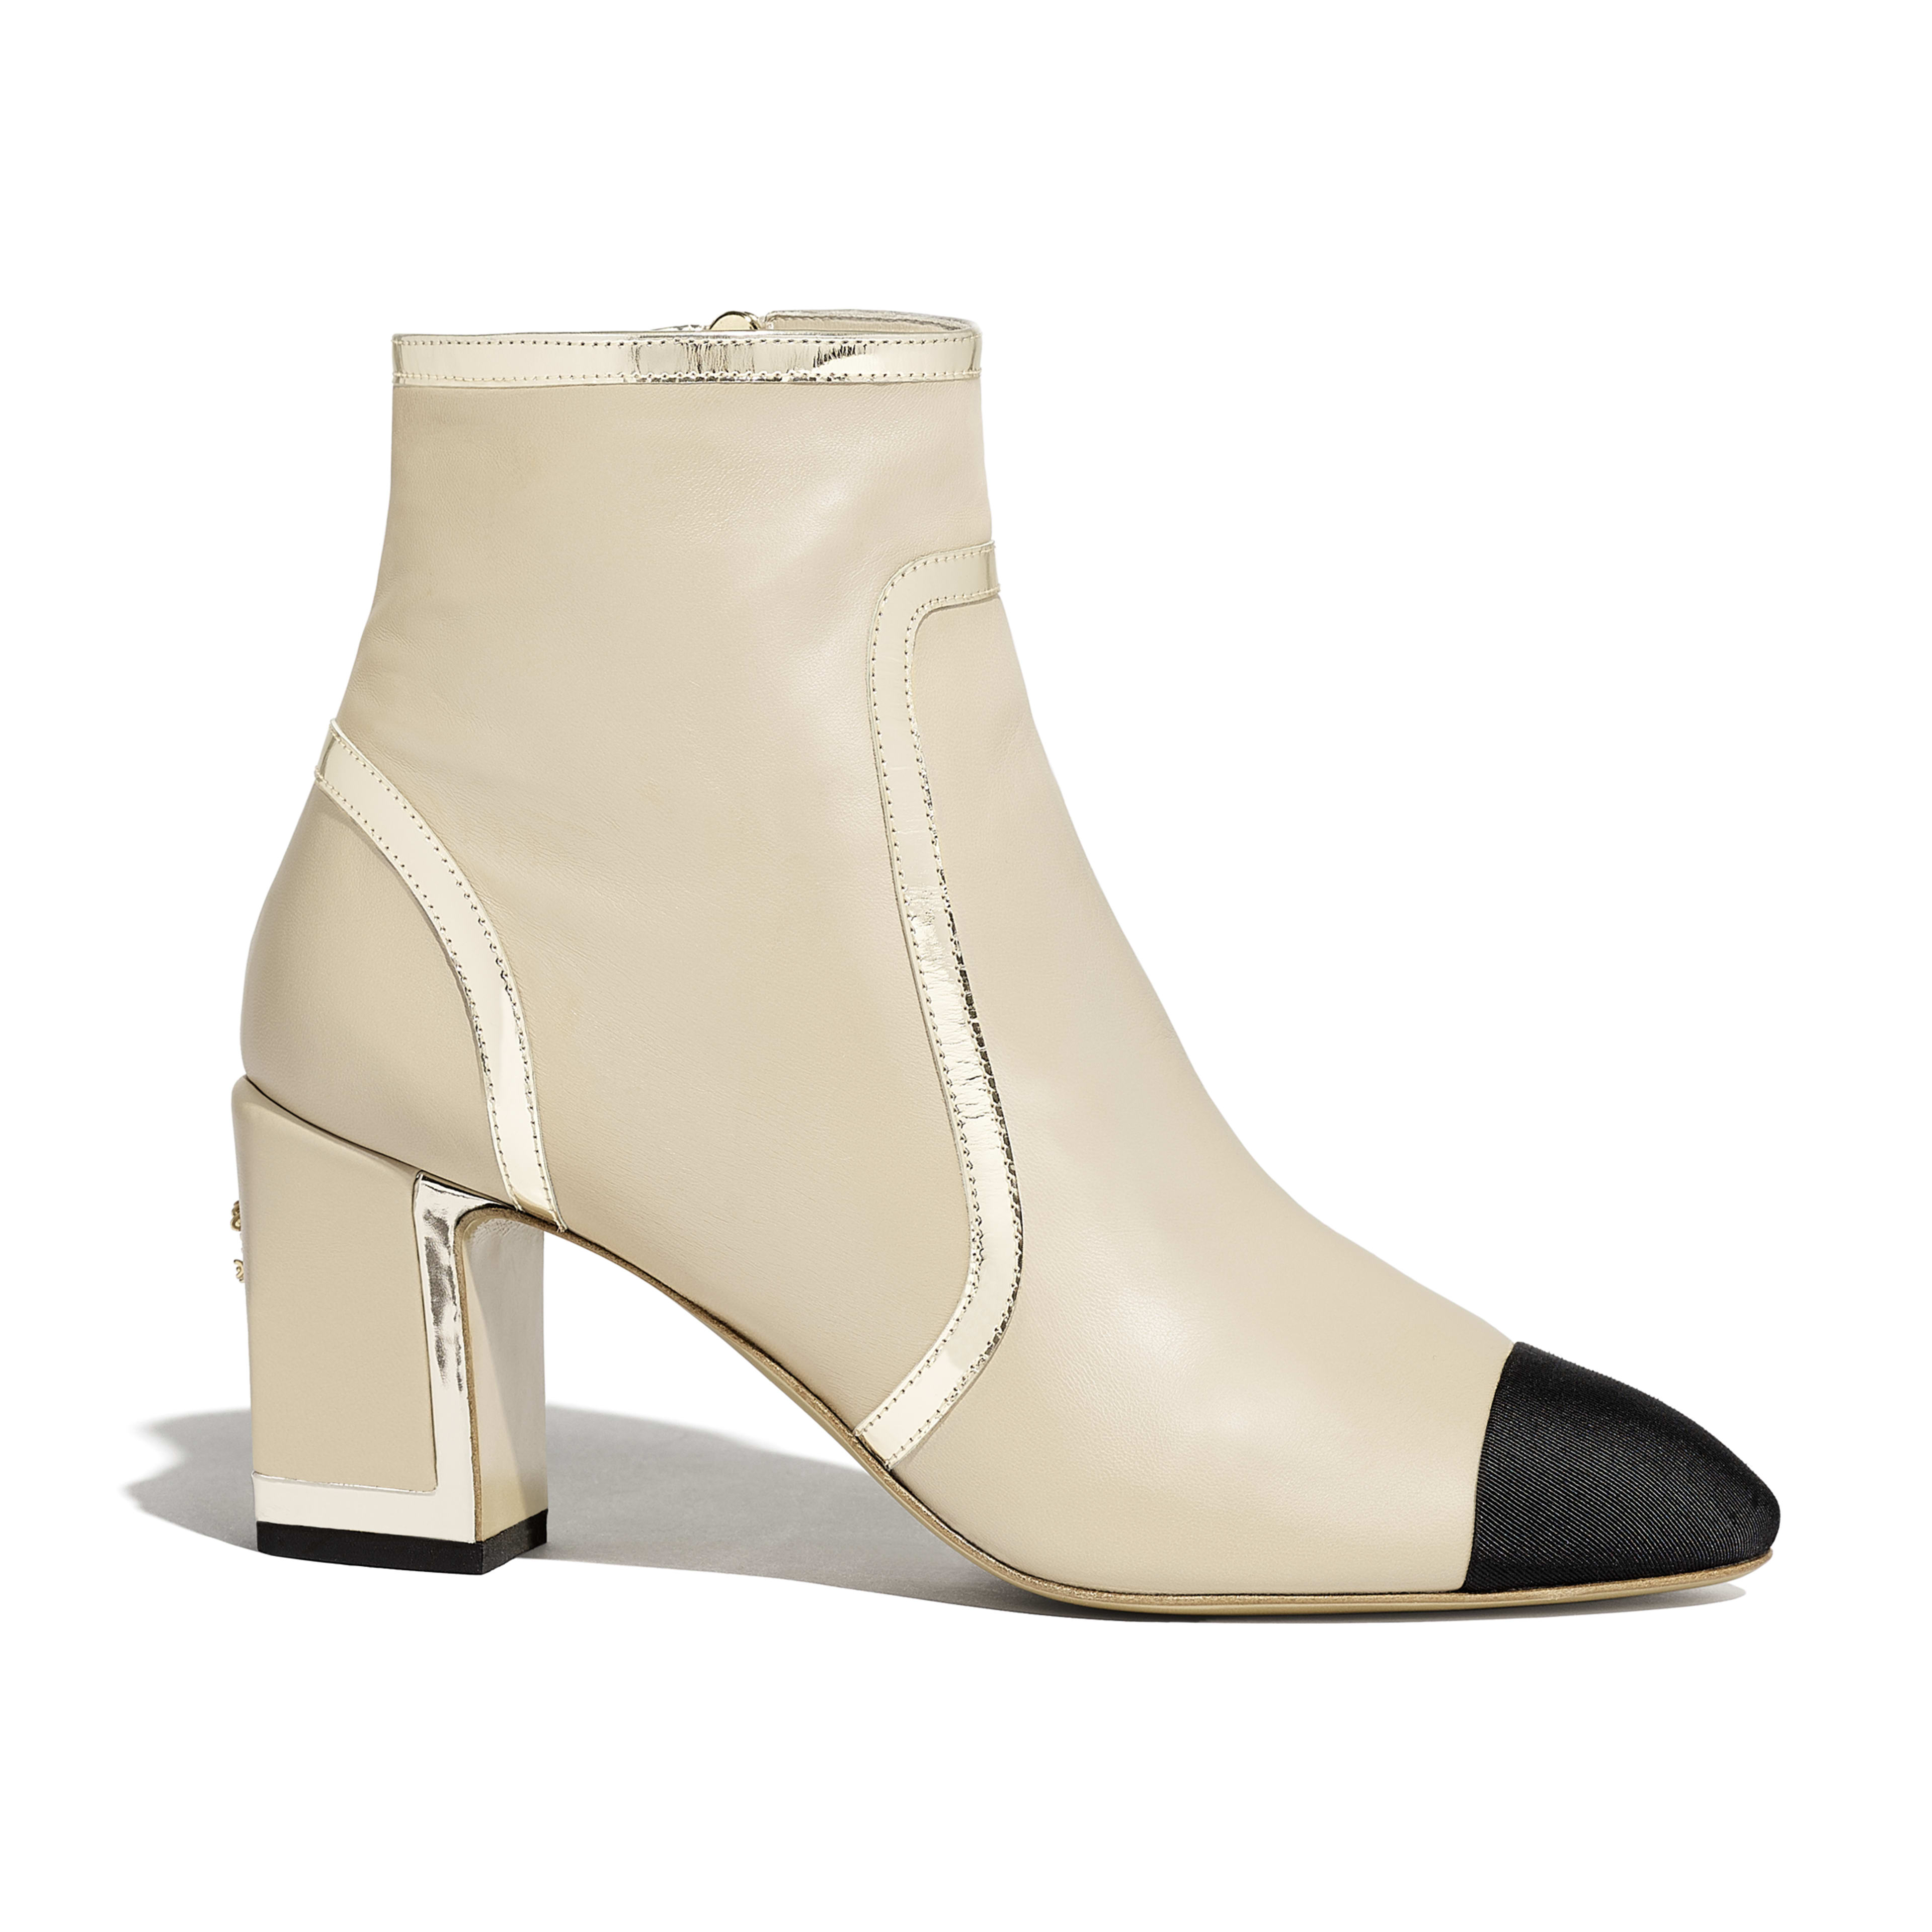 Ankle Boots - Beige & Black - Laminated Lambskin - Default view - see full sized version